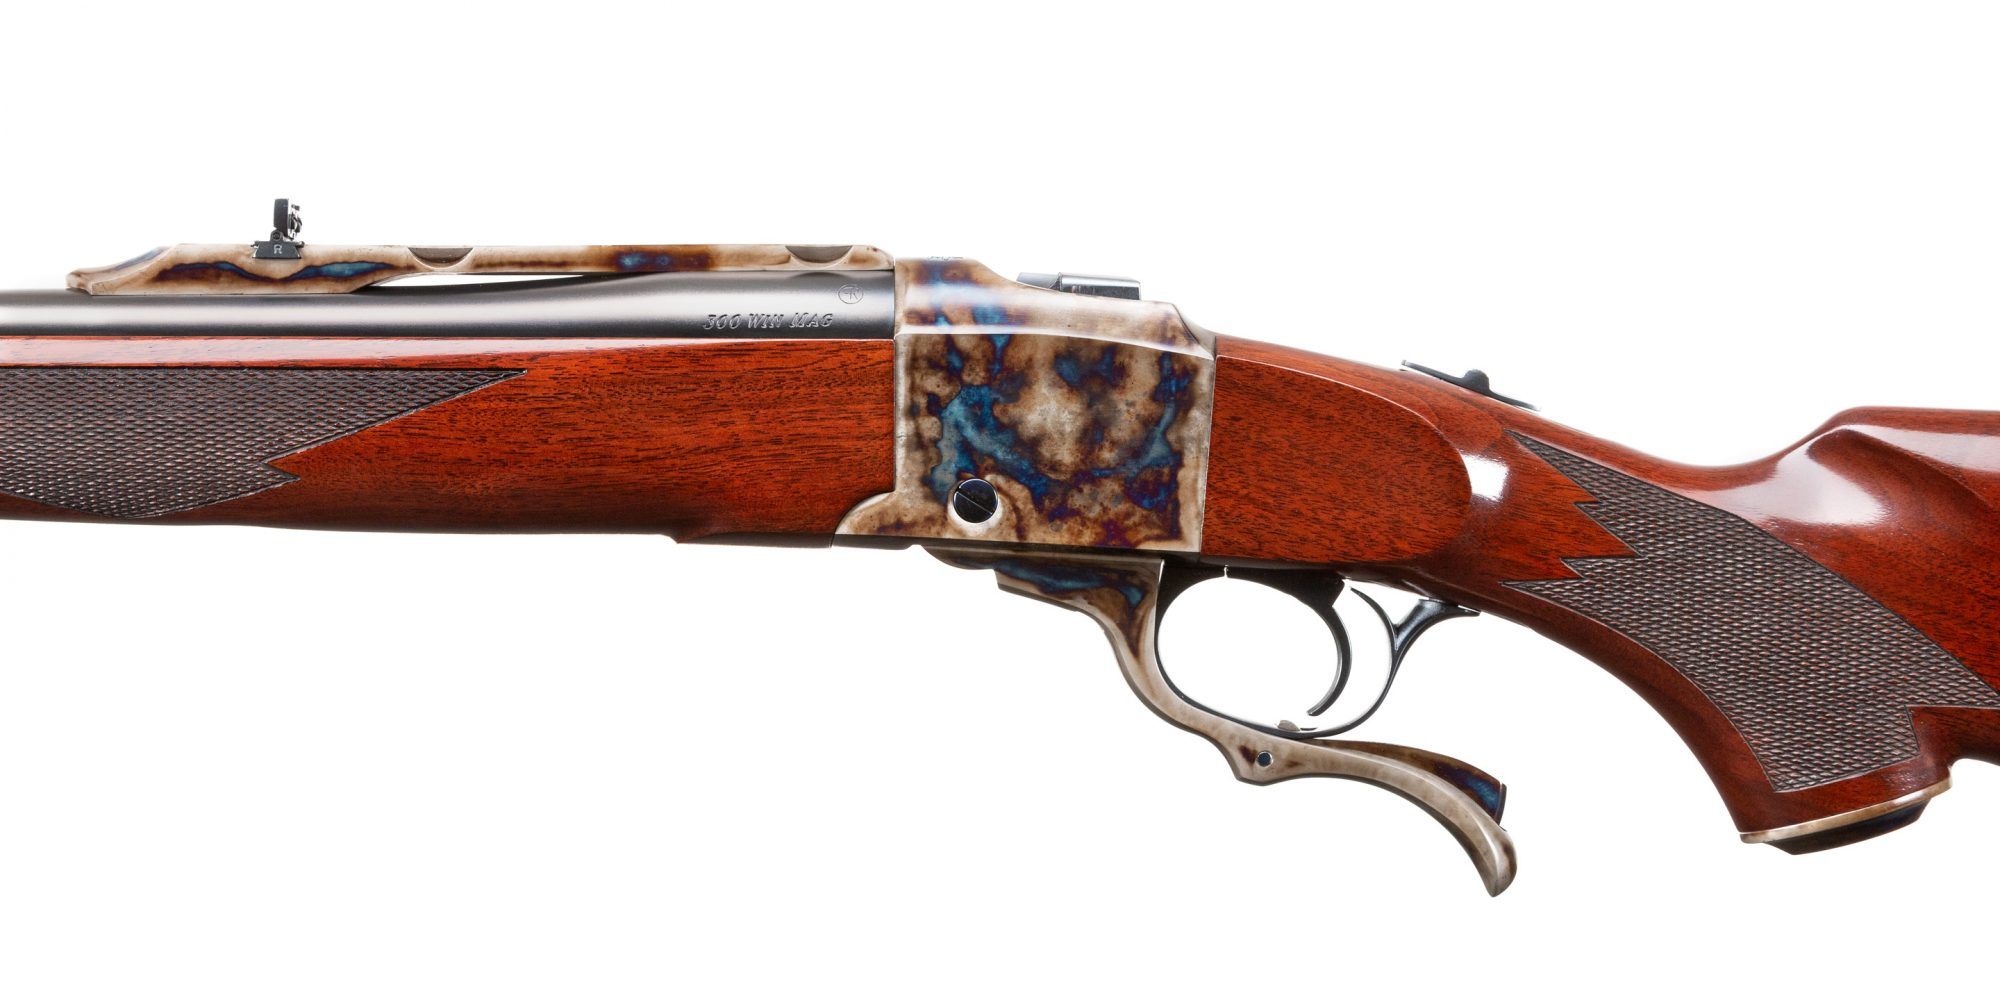 Photo of Ruger No 1 rifle, fully refinished by Turnbull Restoration, featuring bone charcoal color case hardening and hand re-finished wood